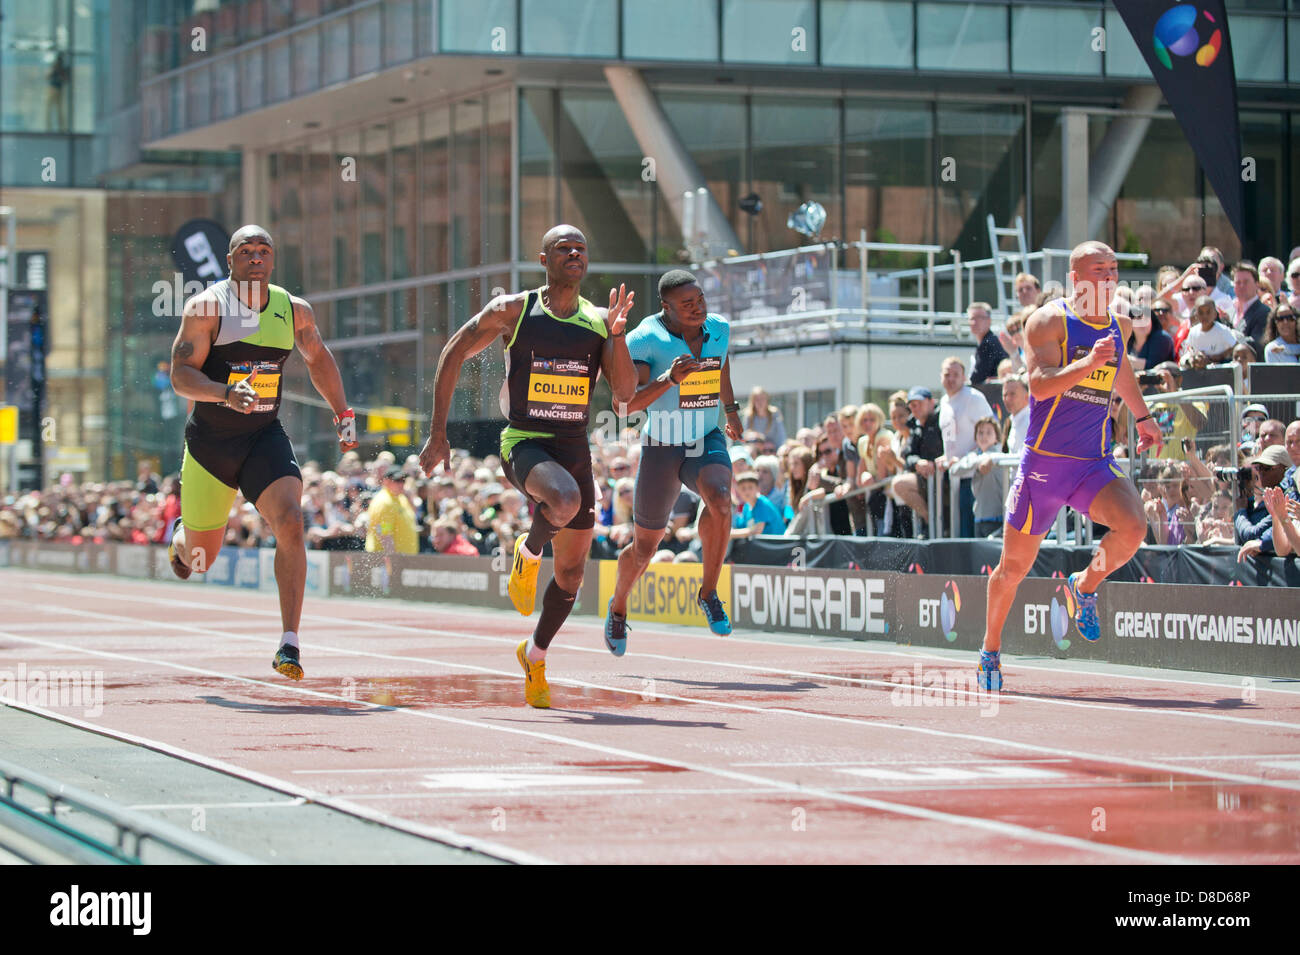 MANCHESTER, UK. 25th May 2013. Kim Collins (second left) of Saint Kitts and Nevis sprints to take 1st place during - Stock Image